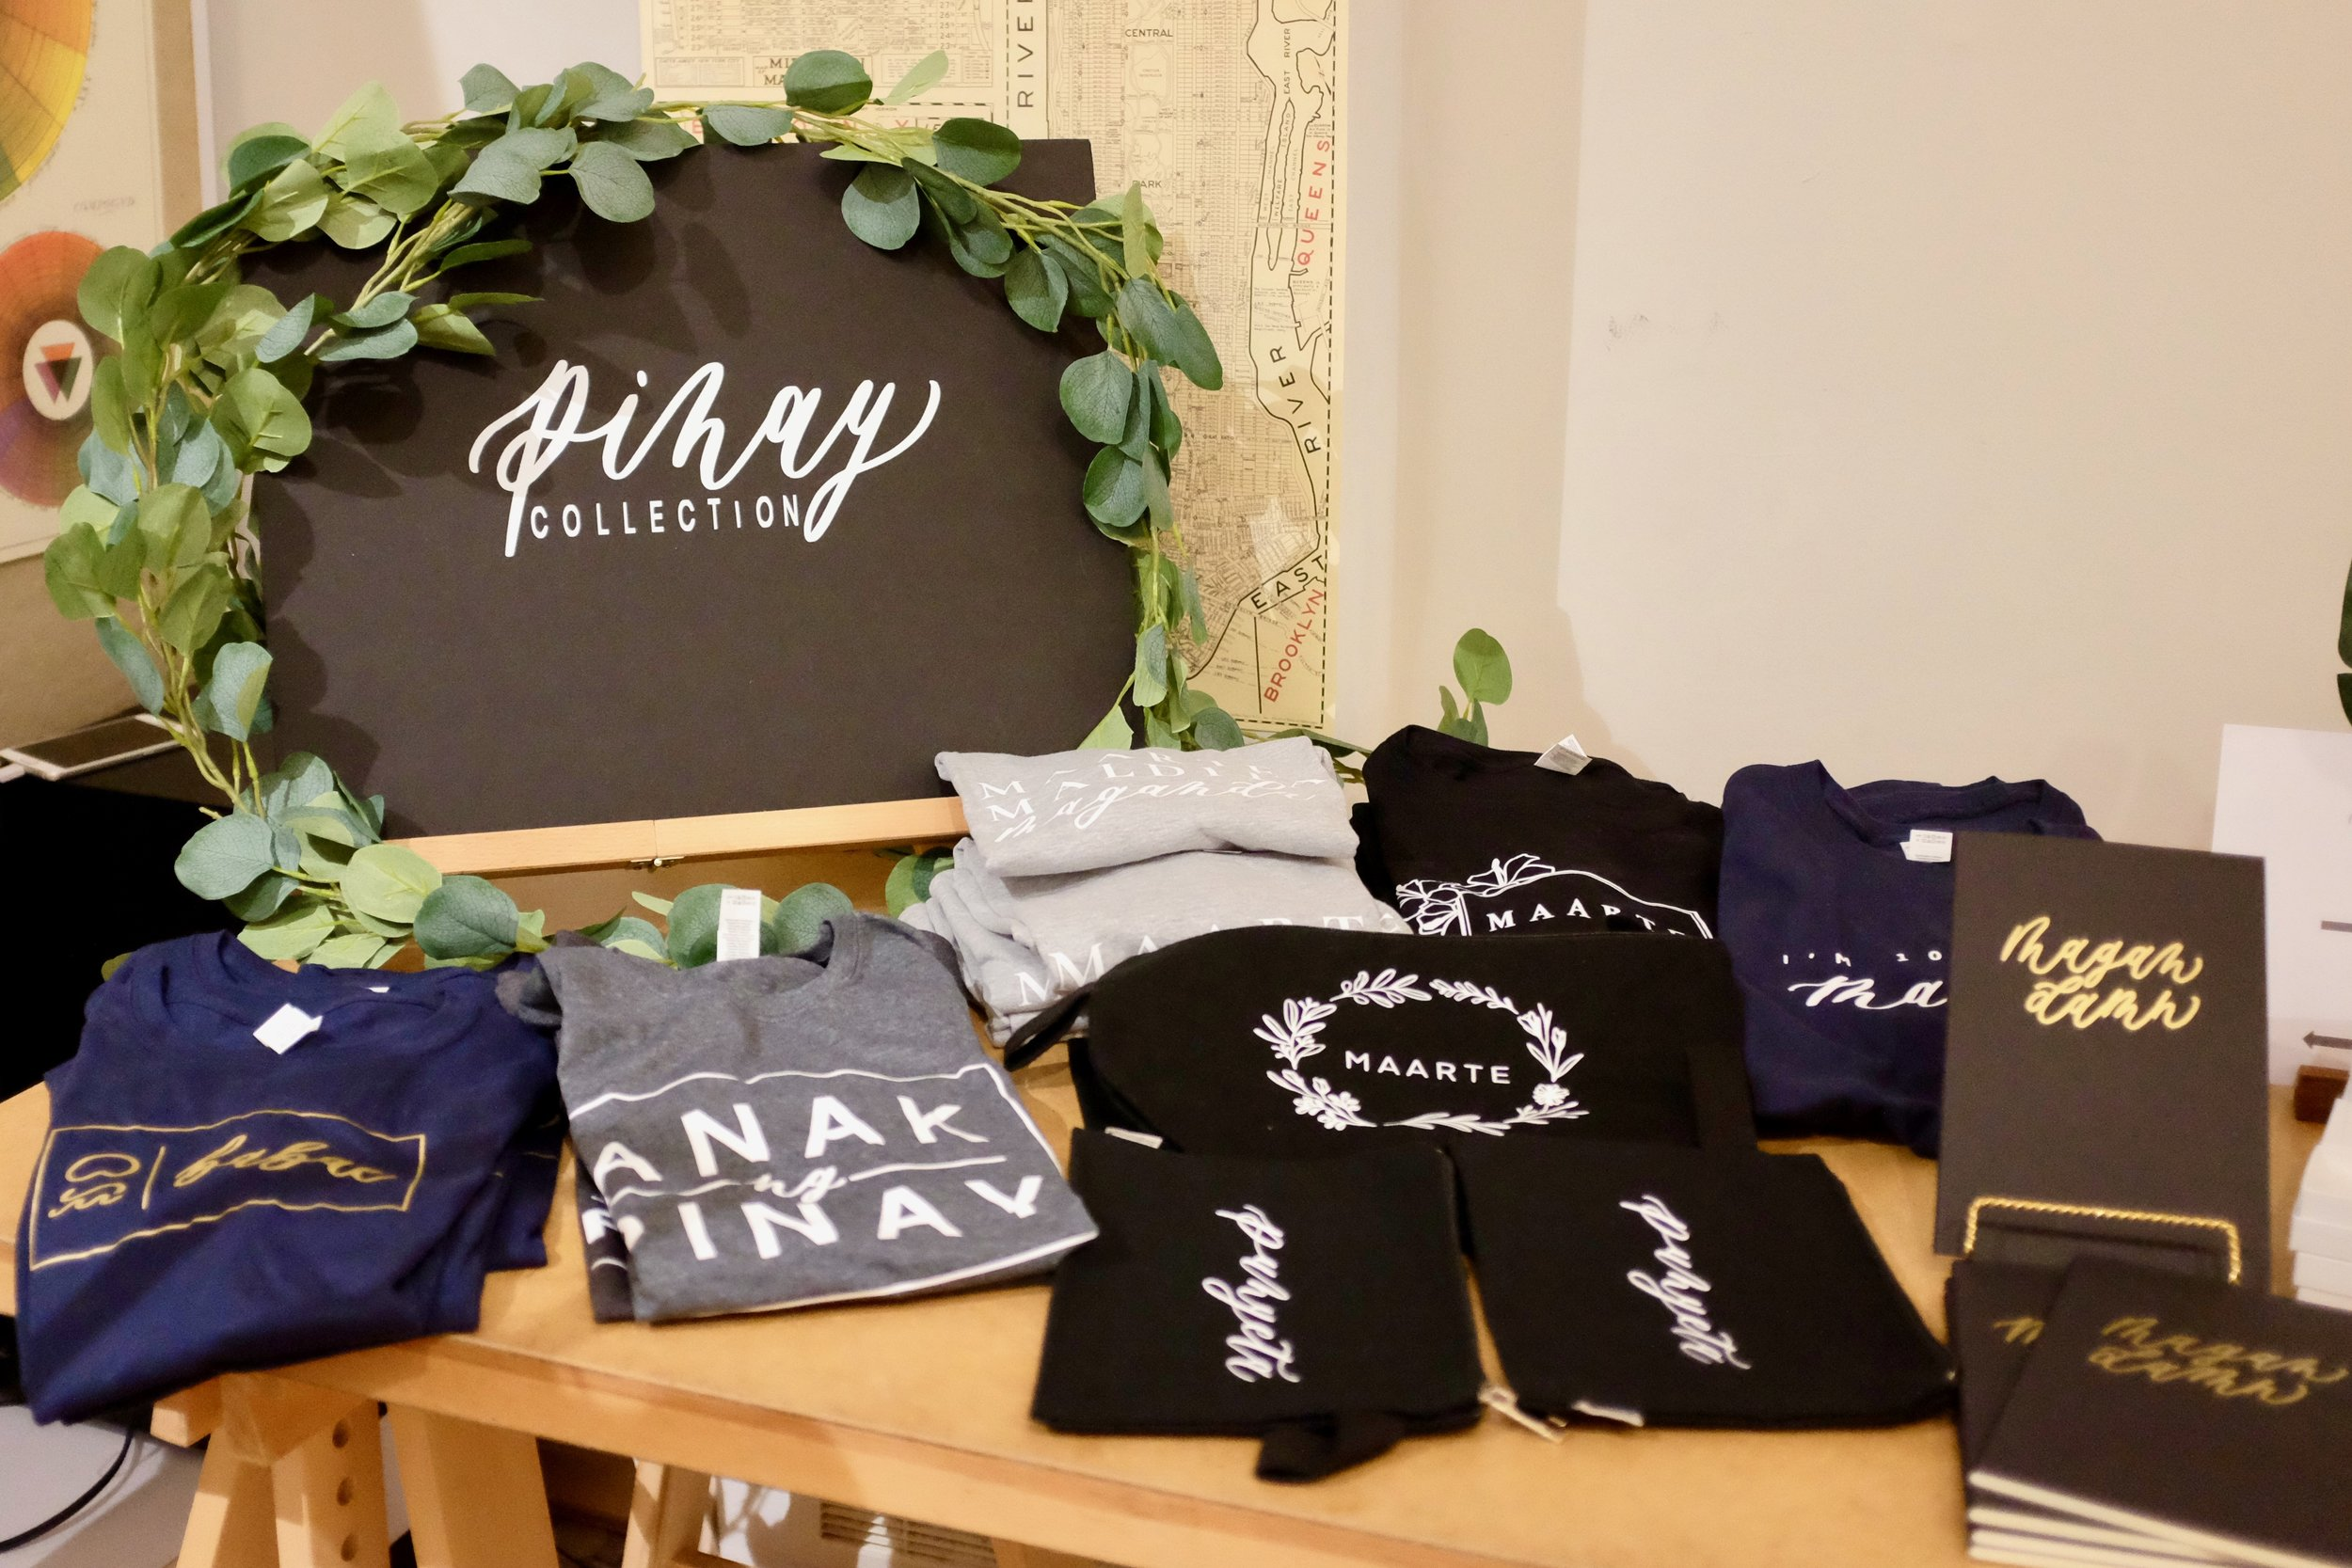 Pinay Collection merchandise. Photo by J. Austria